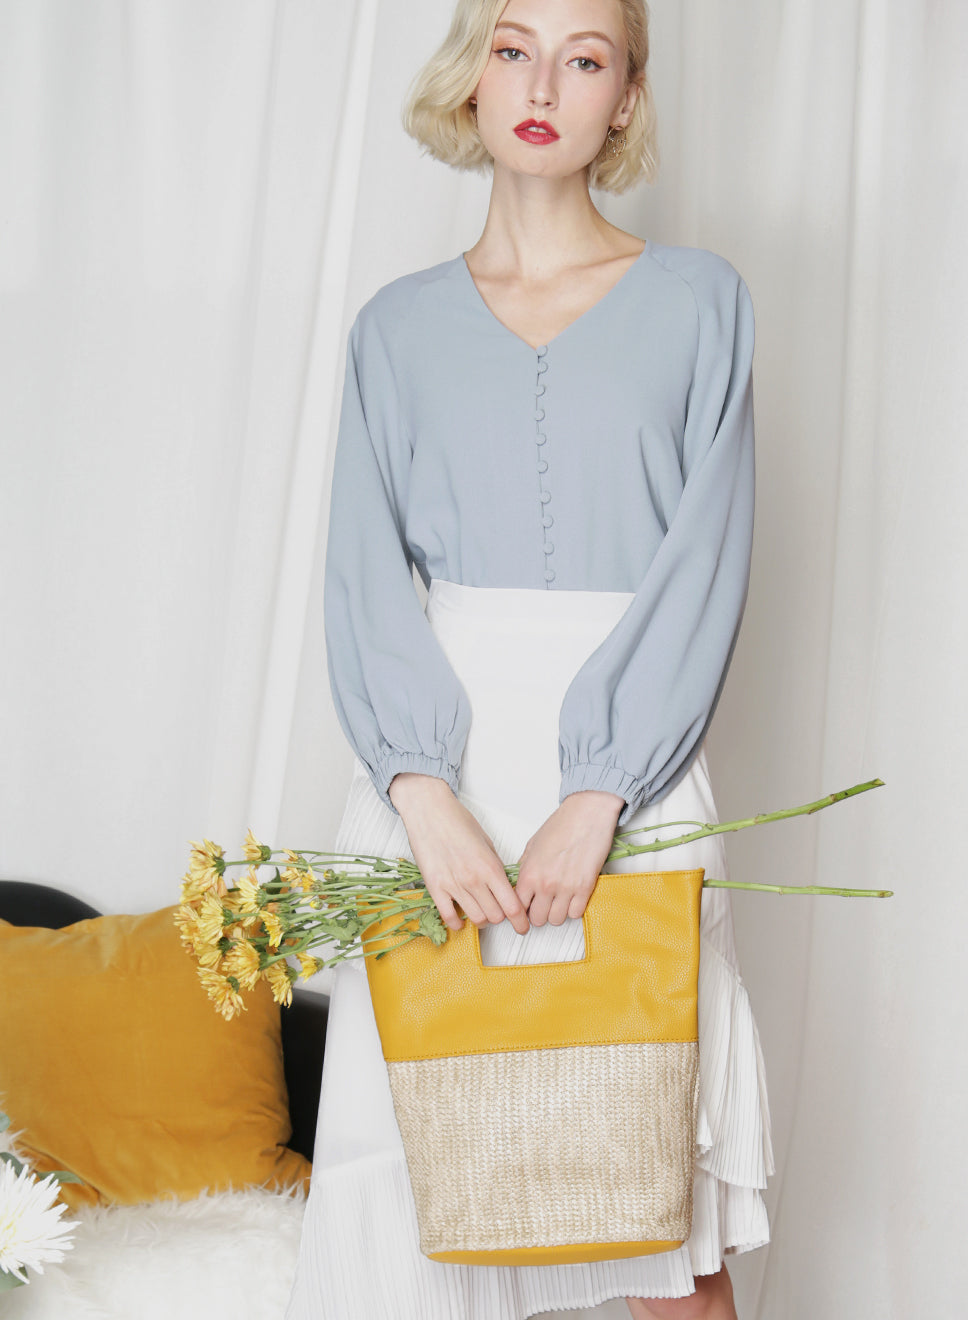 MAE Straw Tote (Mustard) at $ 32.50 only sold at And Well Dressed Online Fashion Store Singapore